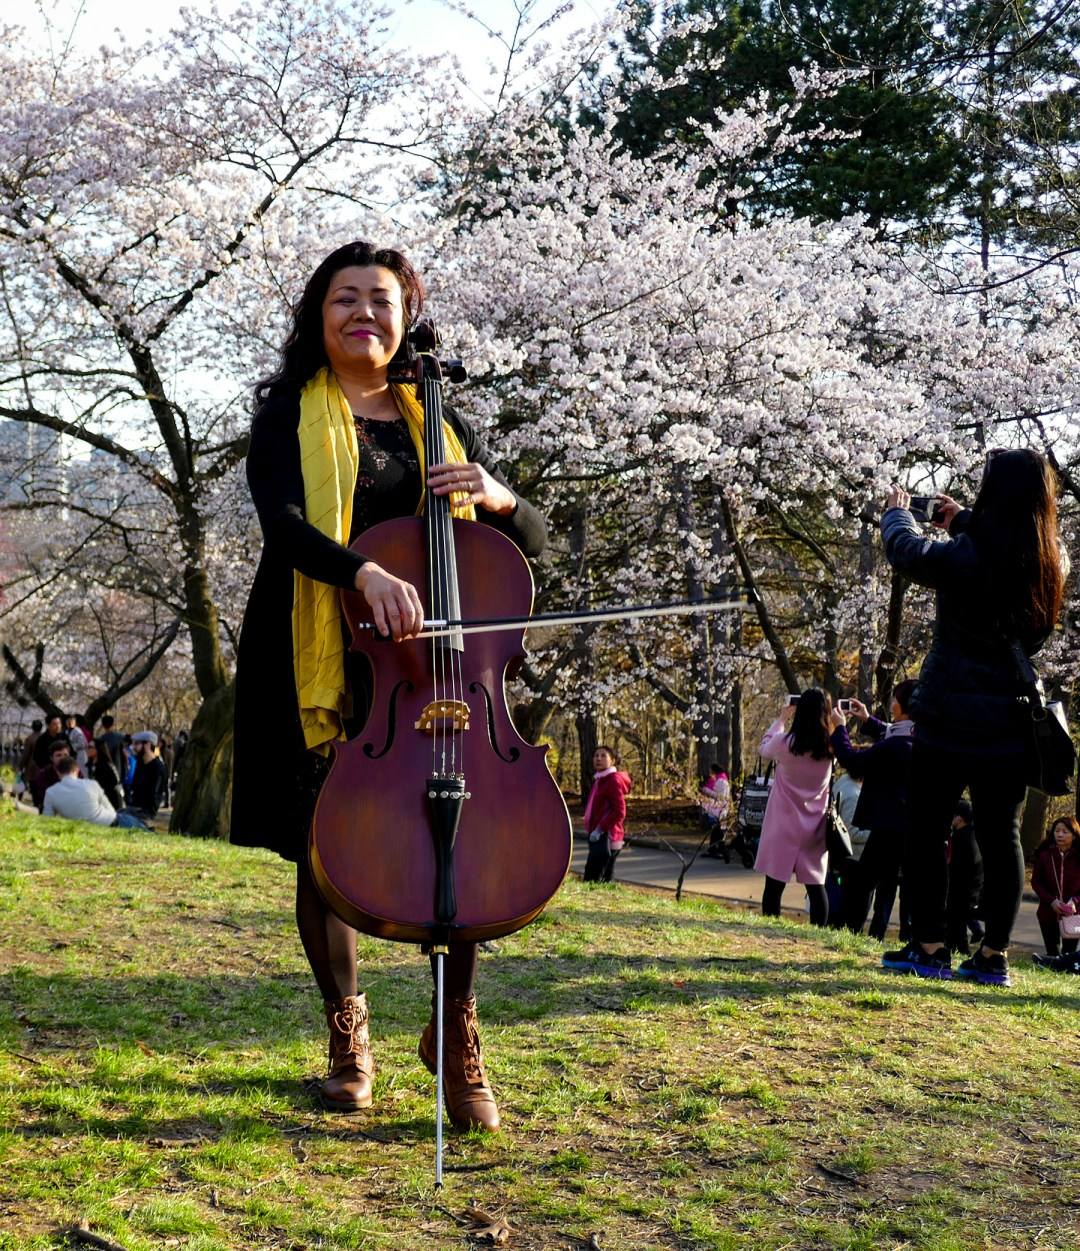 Cello player in High Park for boomervoice